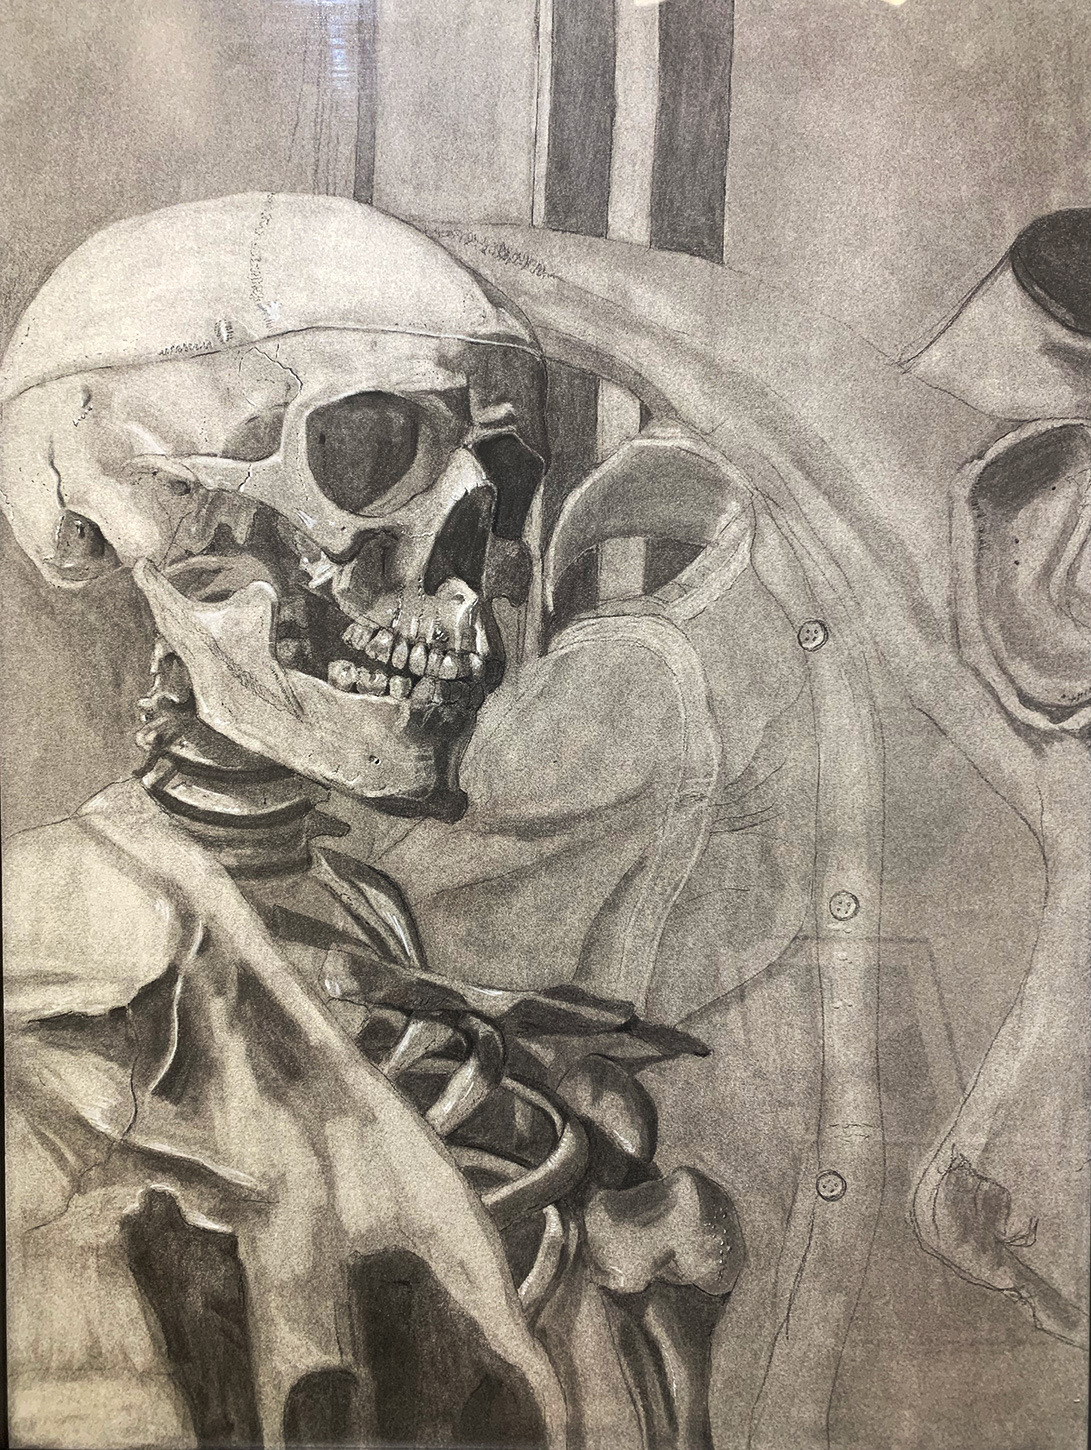 ARE-Skeleton-Charcoal-1.jpg